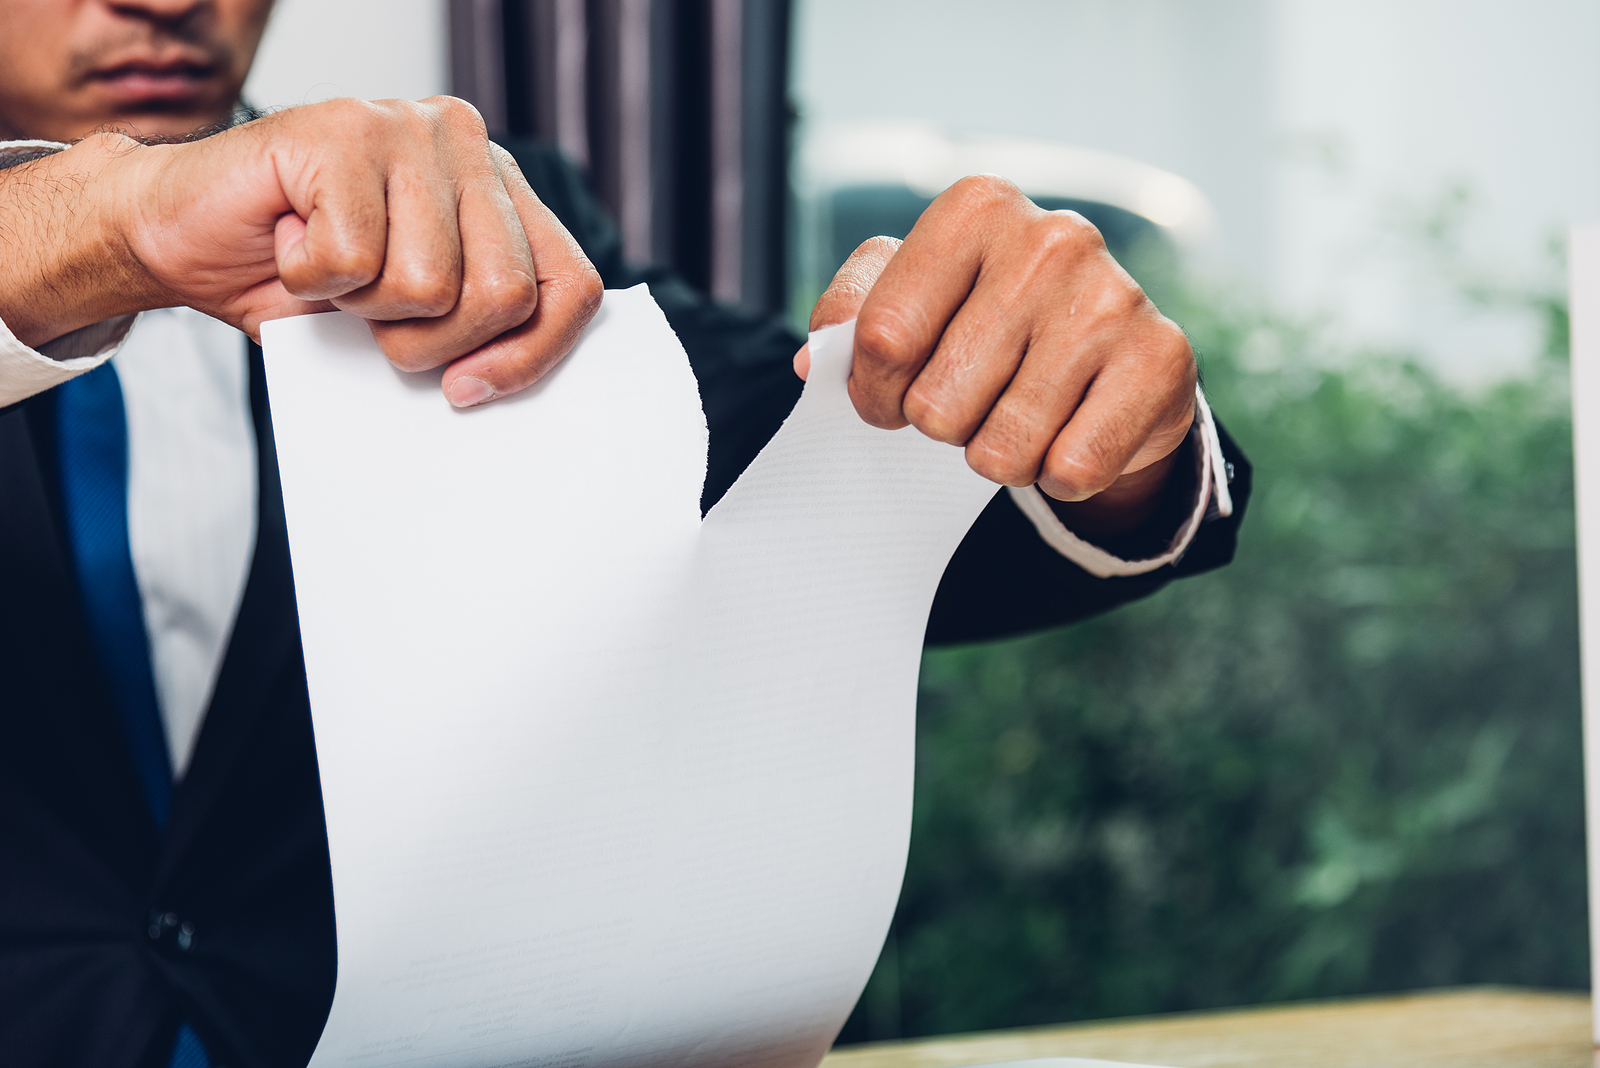 10 Reasons for an Employment Tribunal: Get the Treatment You Deserve